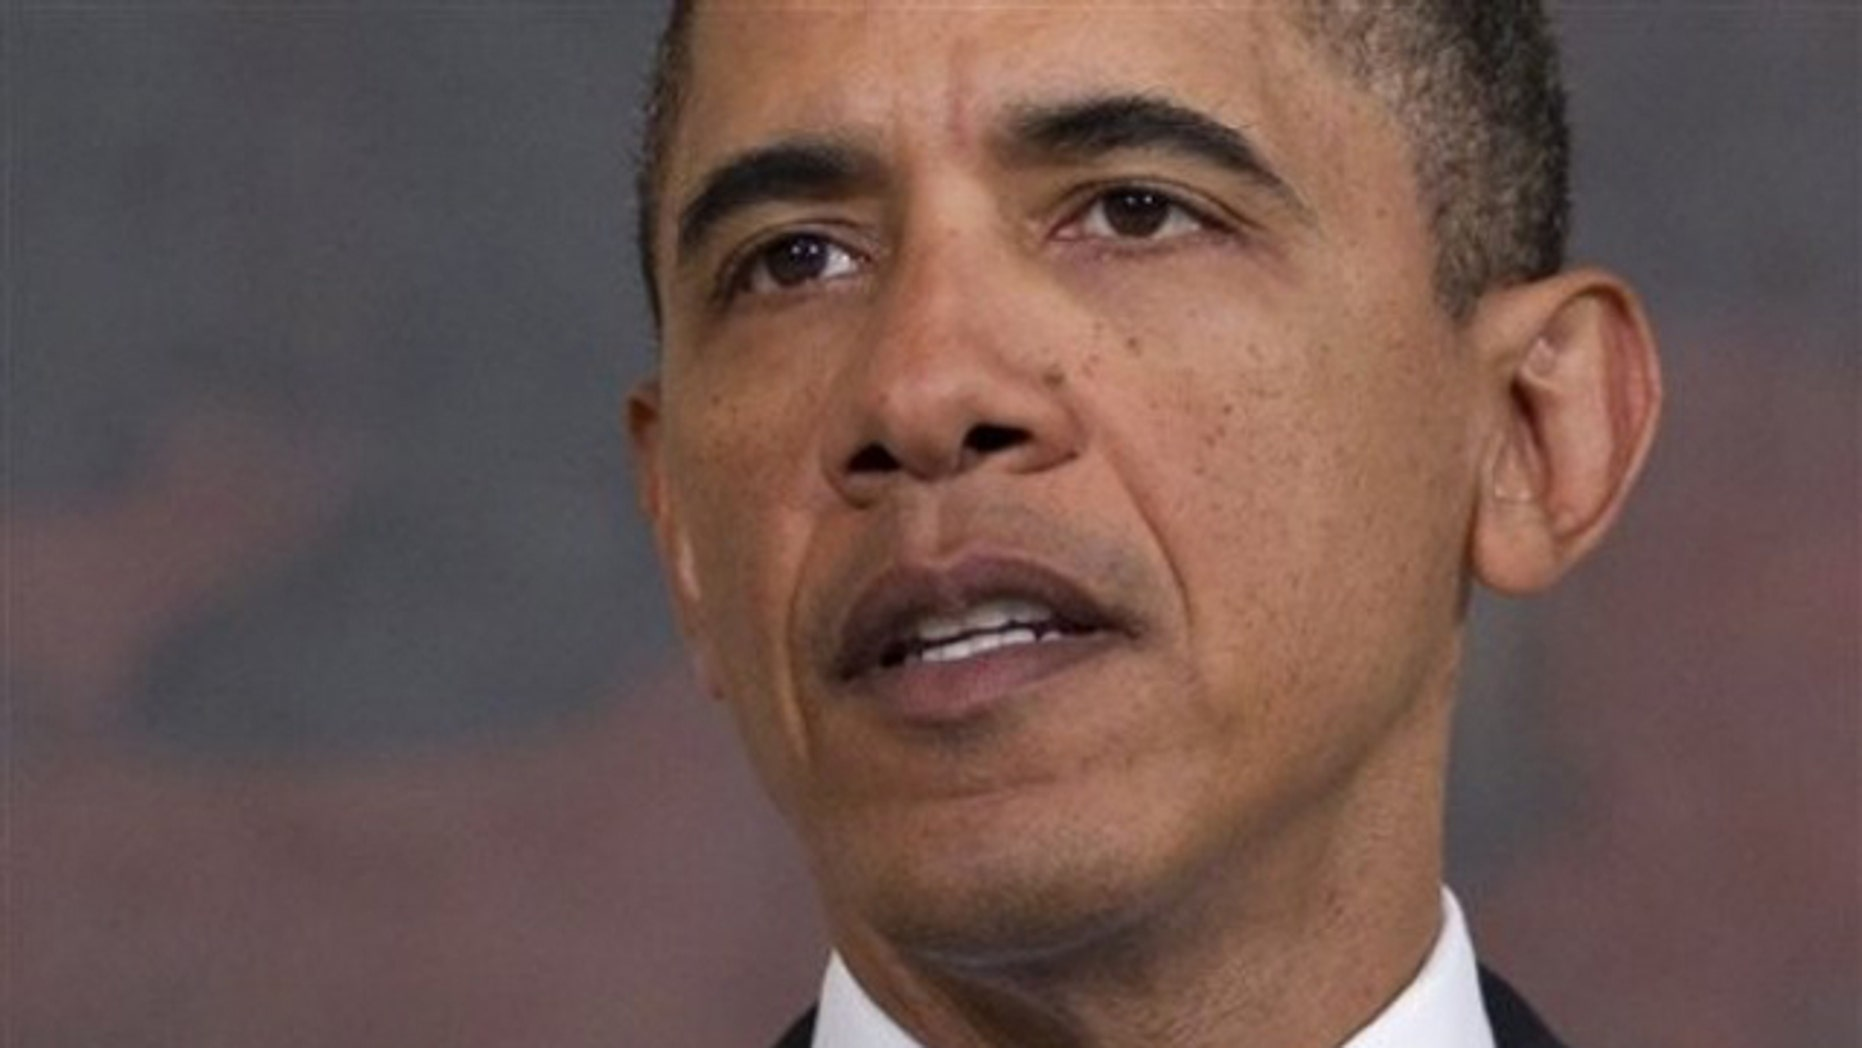 After two years in office, over half of American voters say President Obama is failing to live up to expectations, according to a Fox News poll (AP).